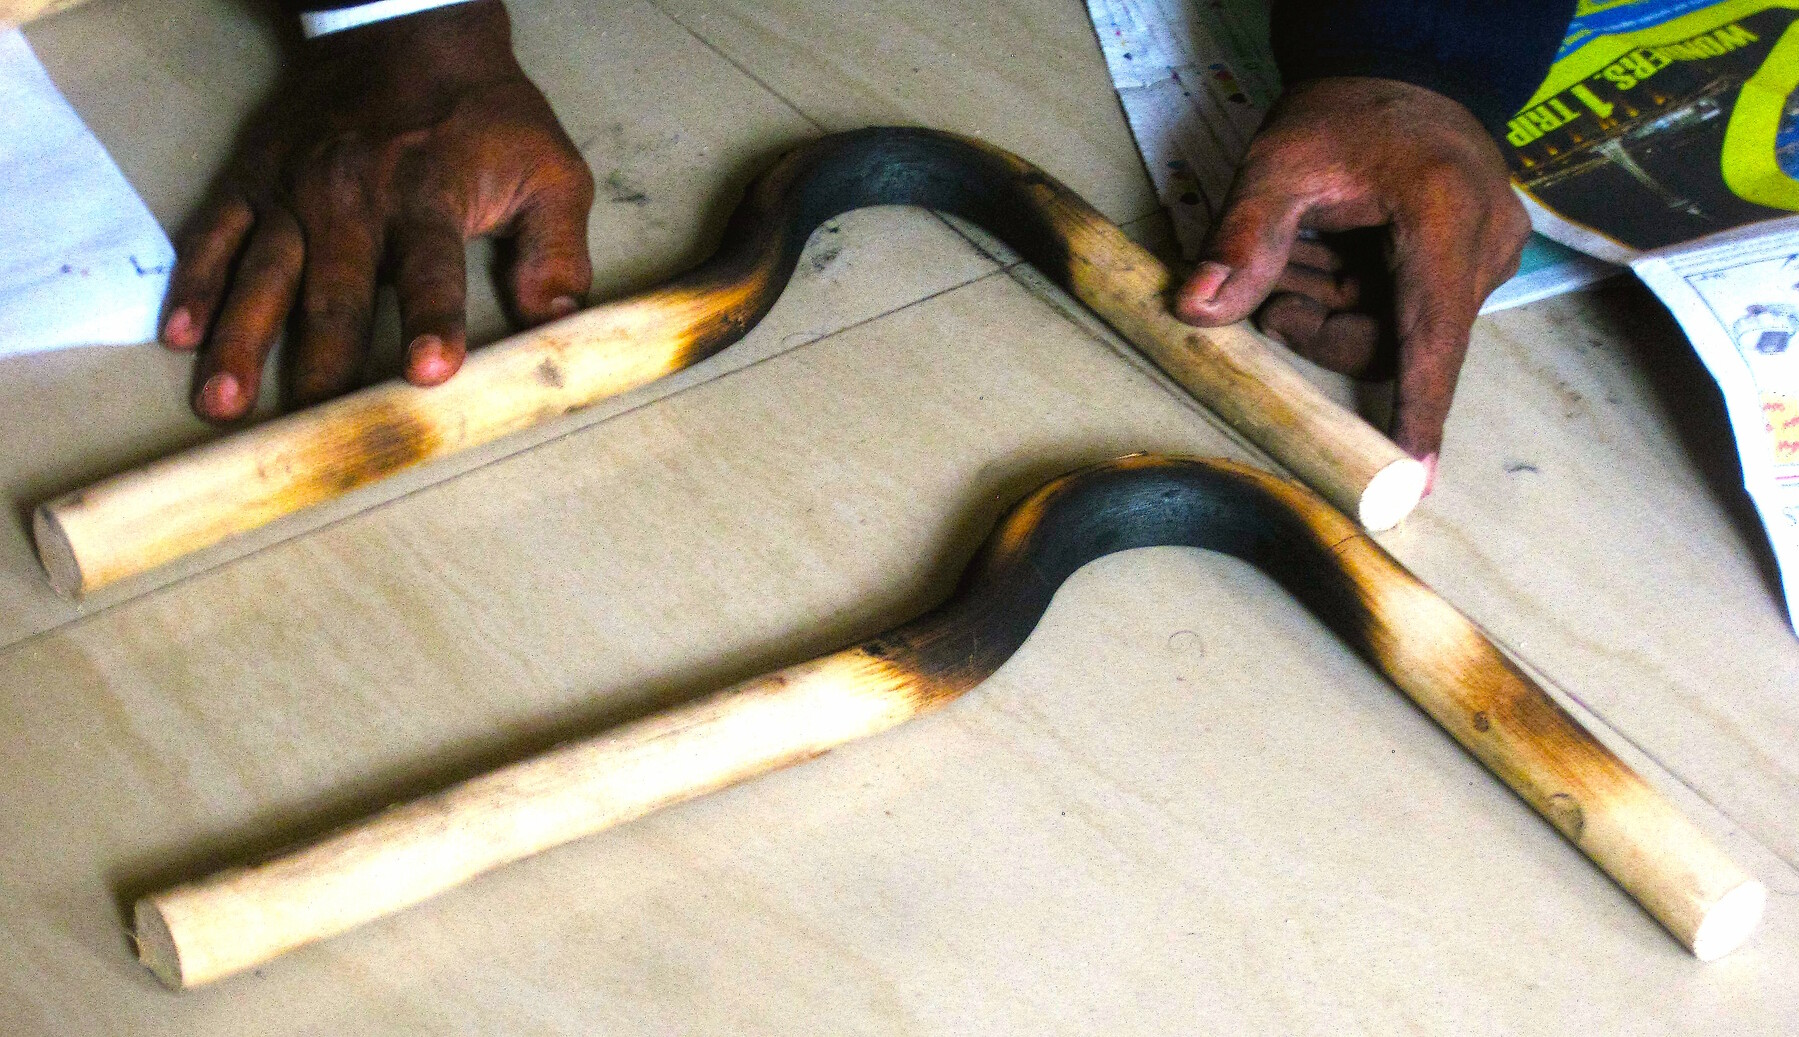 At Rise Legs in Bangalore, India, artificial legs are custom made for amputees using low-cost cane. Here, a fabricator bends and shapes the cane in a curve.